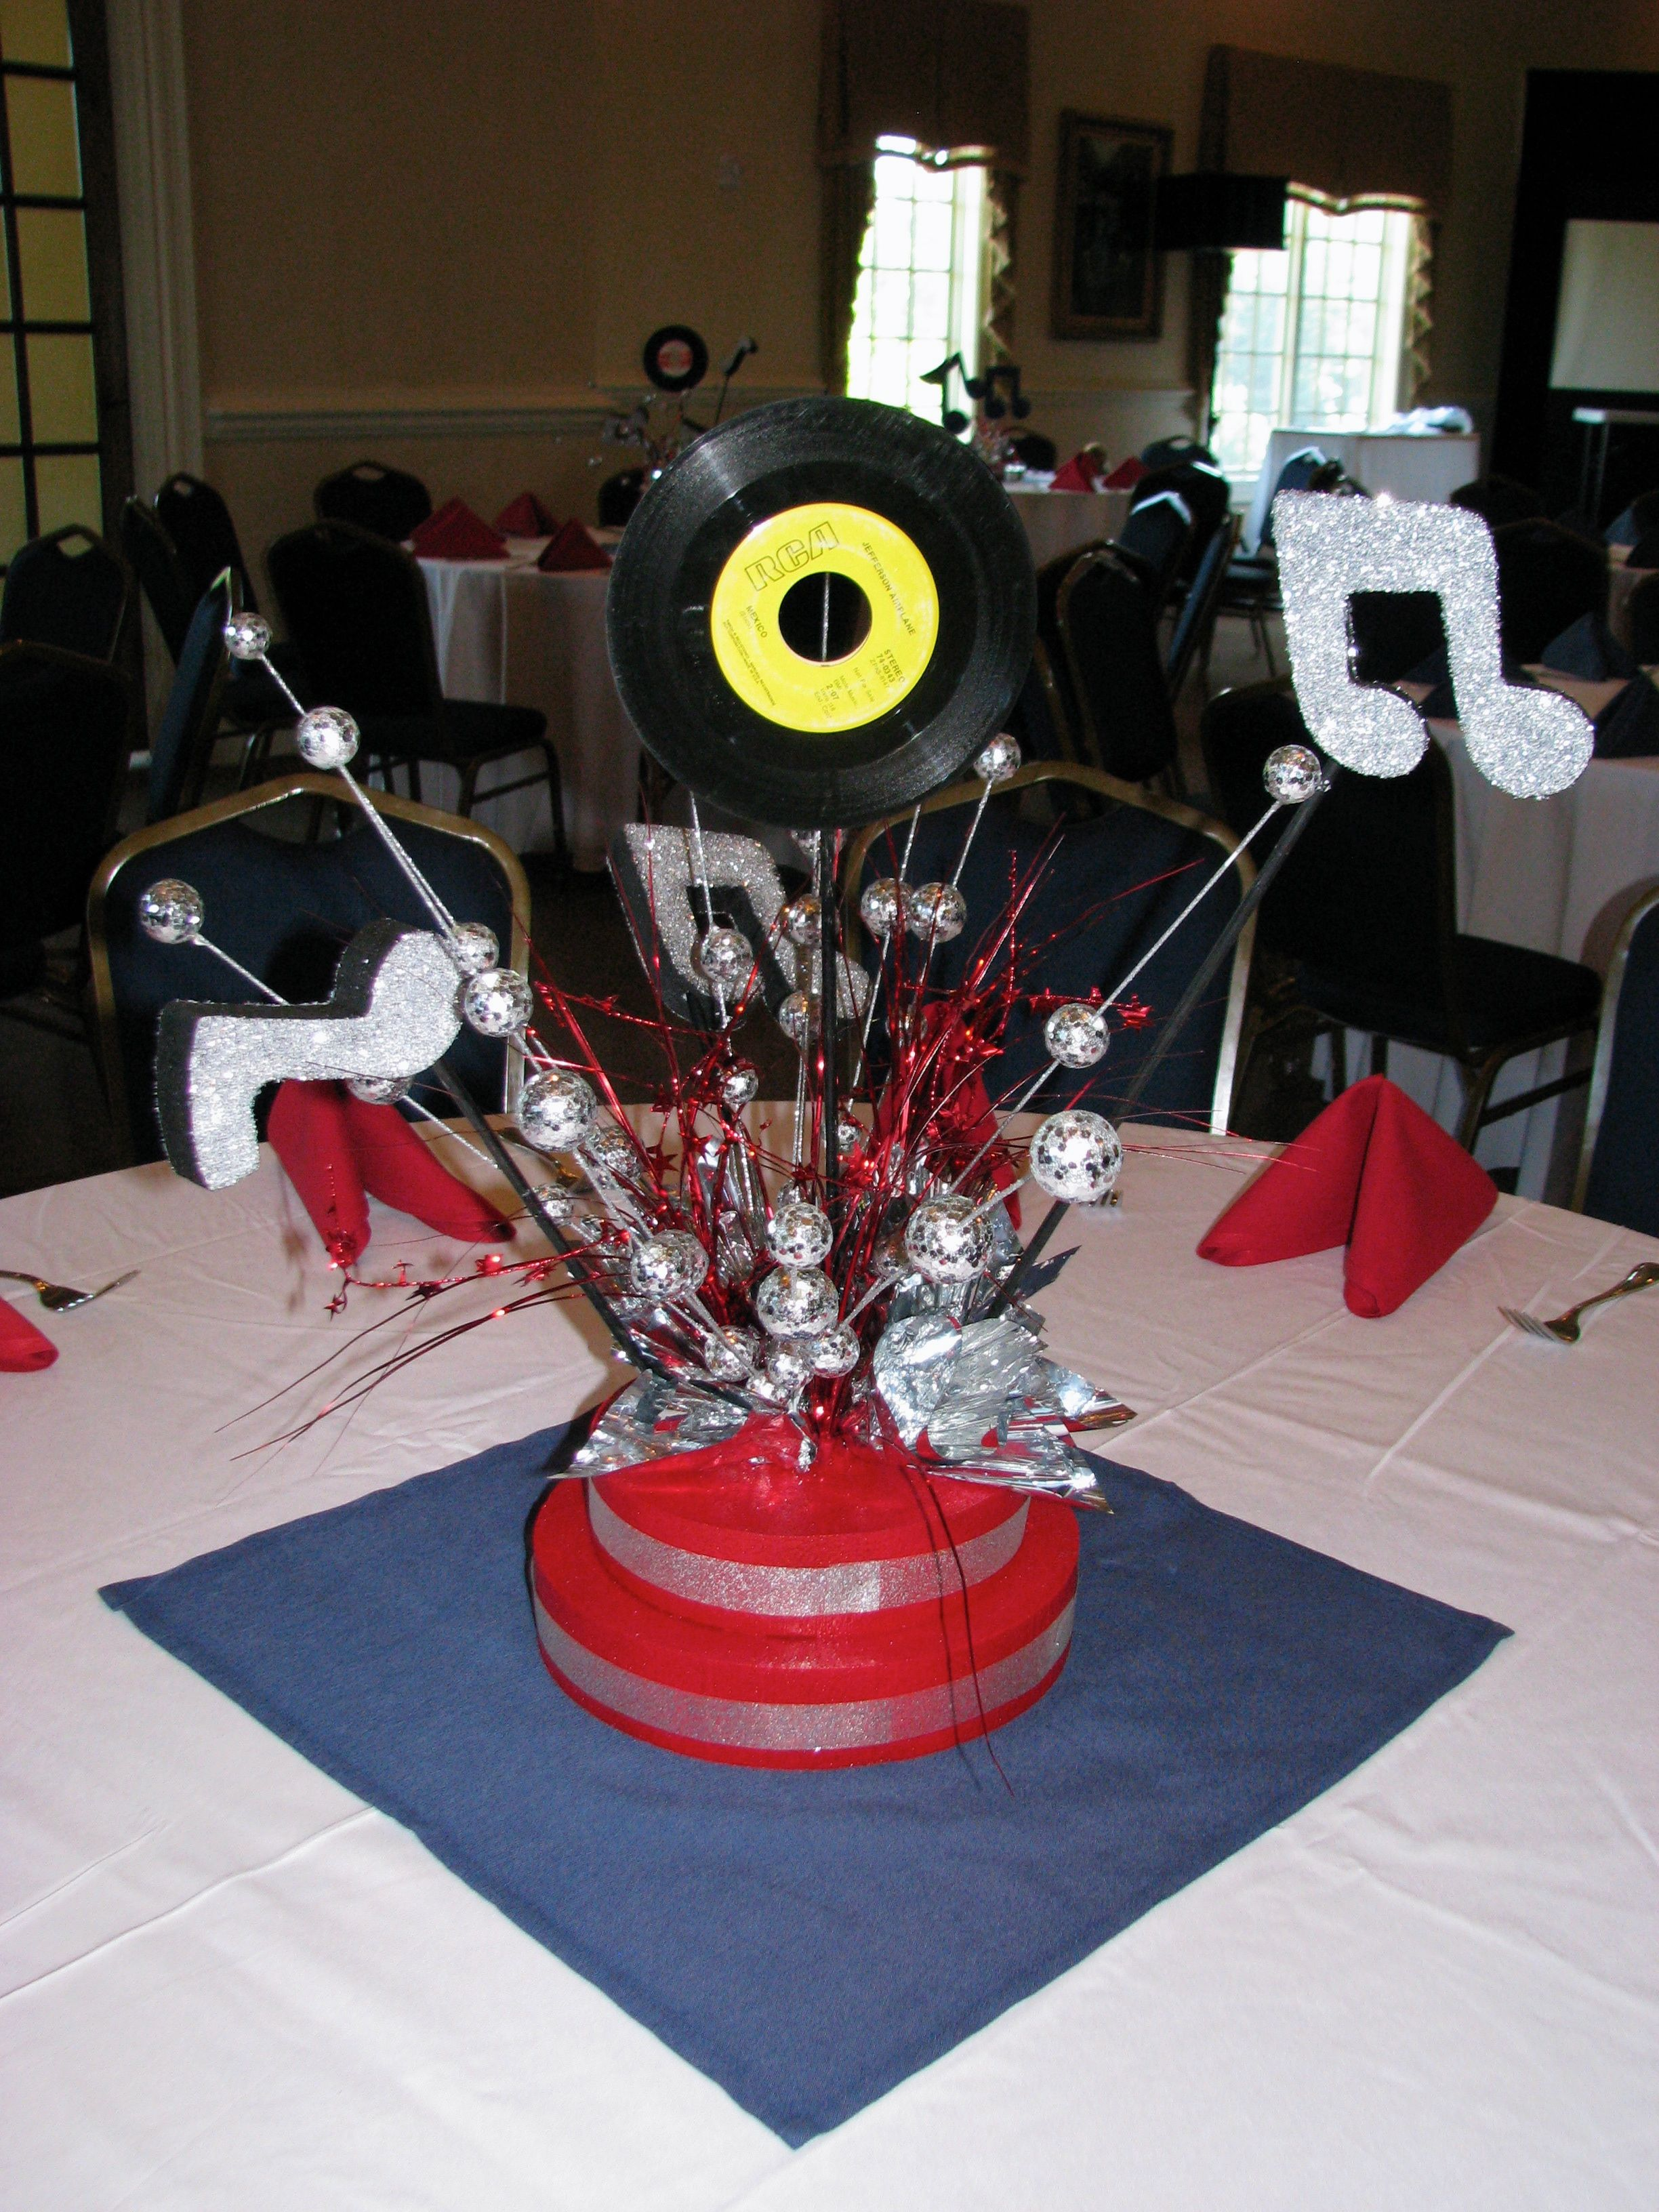 rock n 39 roll centerpiece by the party girl events fundraiser american bandstand pinterest. Black Bedroom Furniture Sets. Home Design Ideas